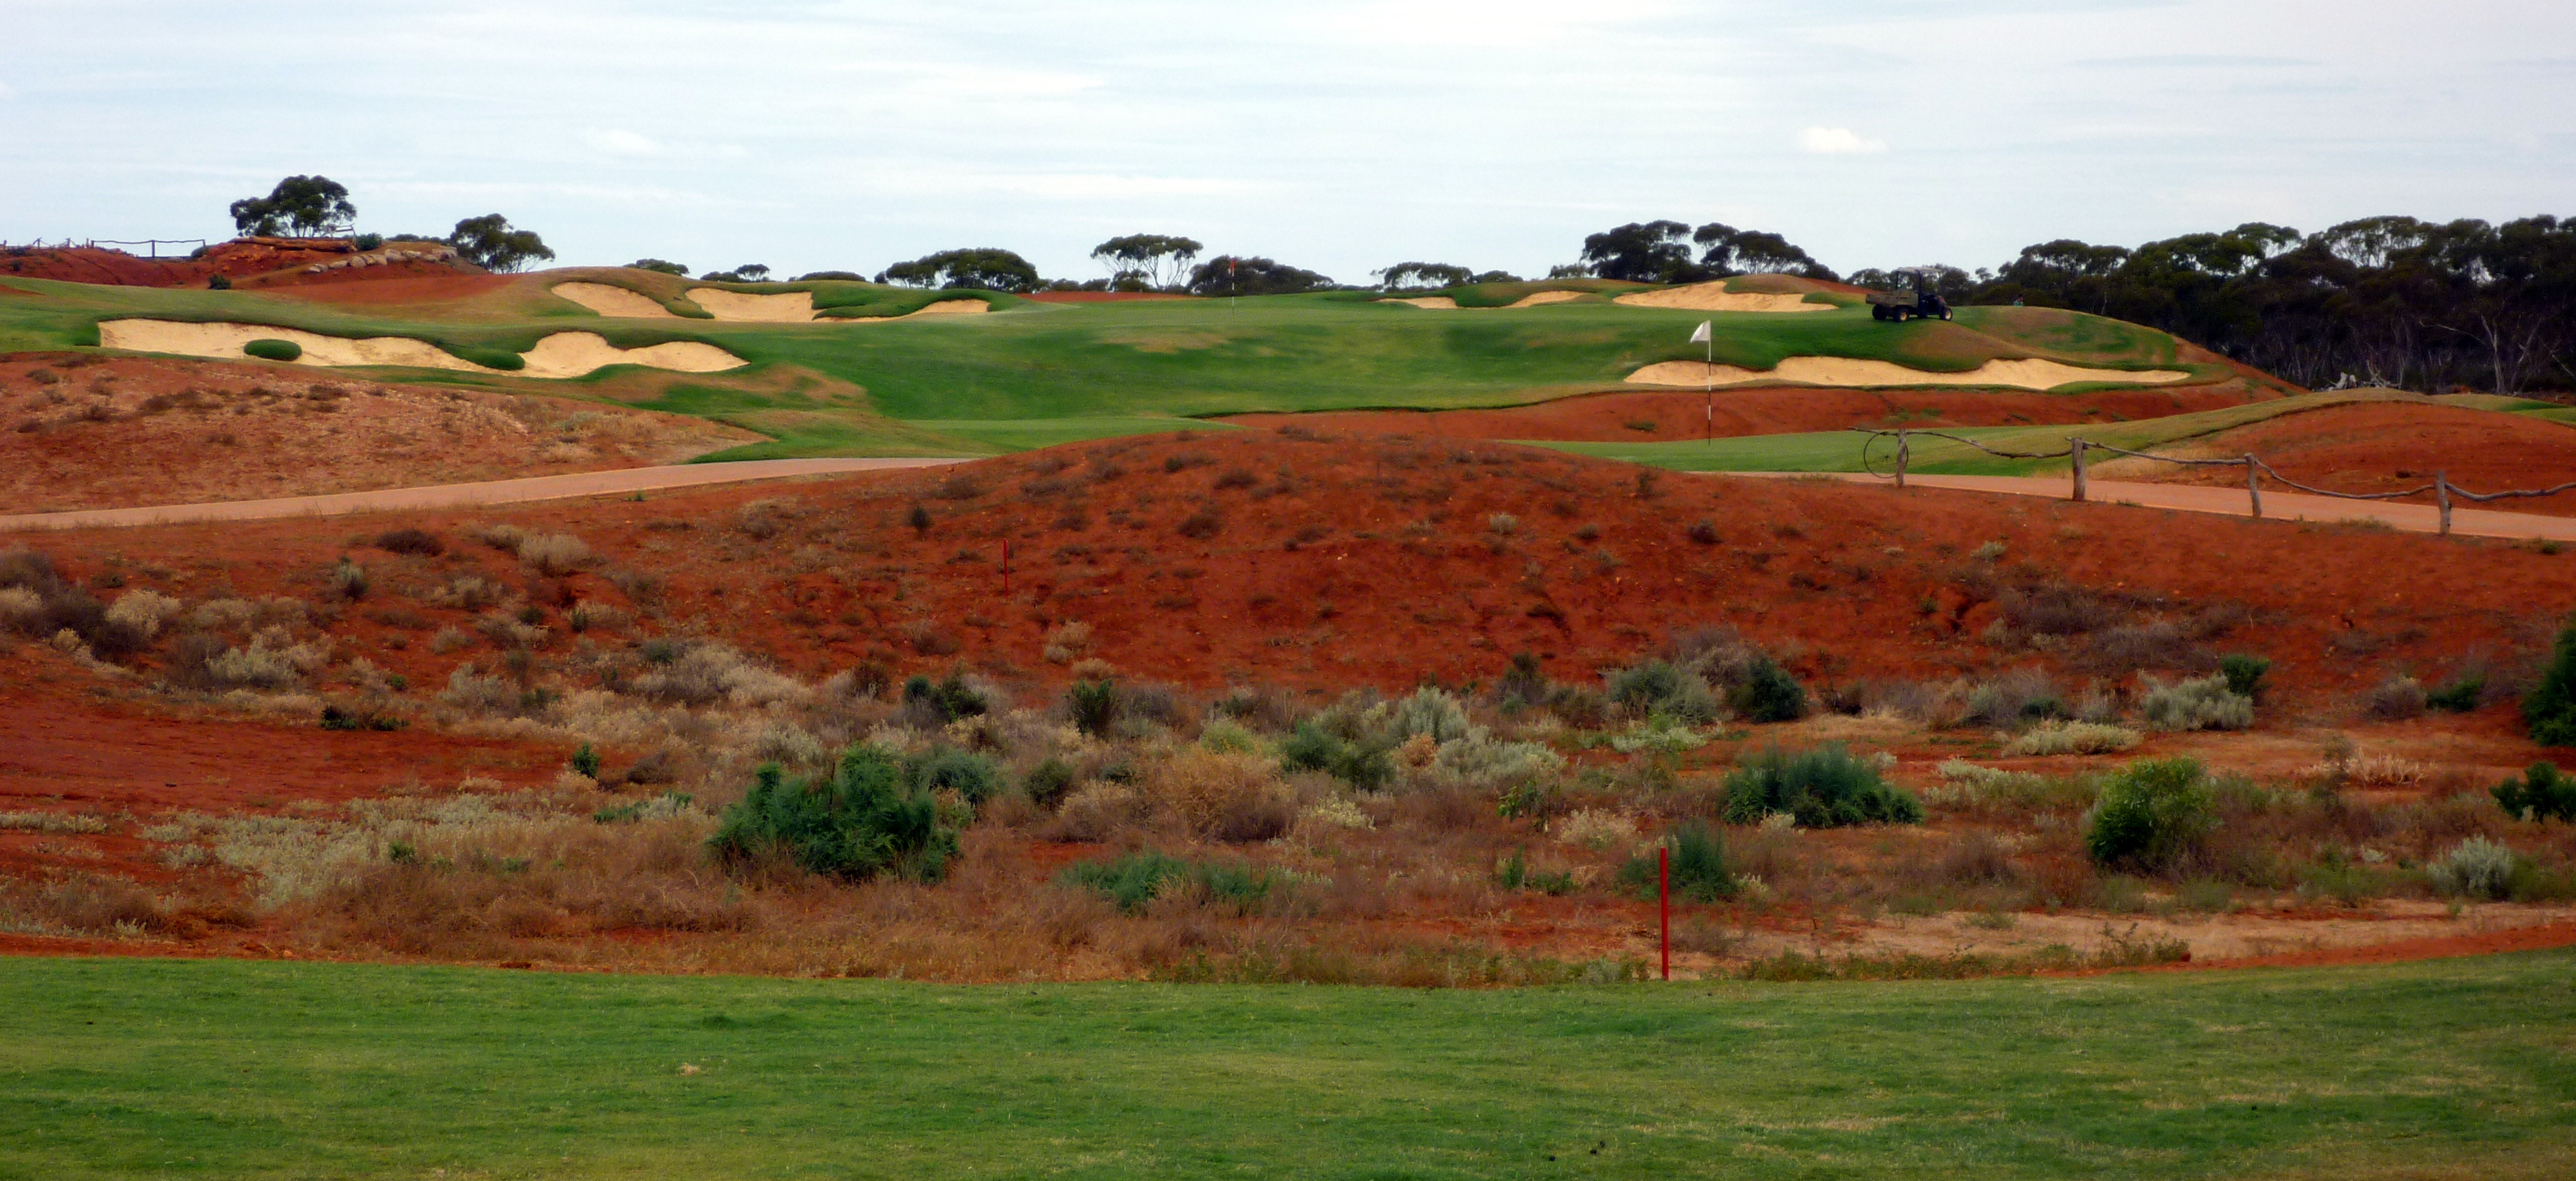 Overview of golf course named Nullarbor Links